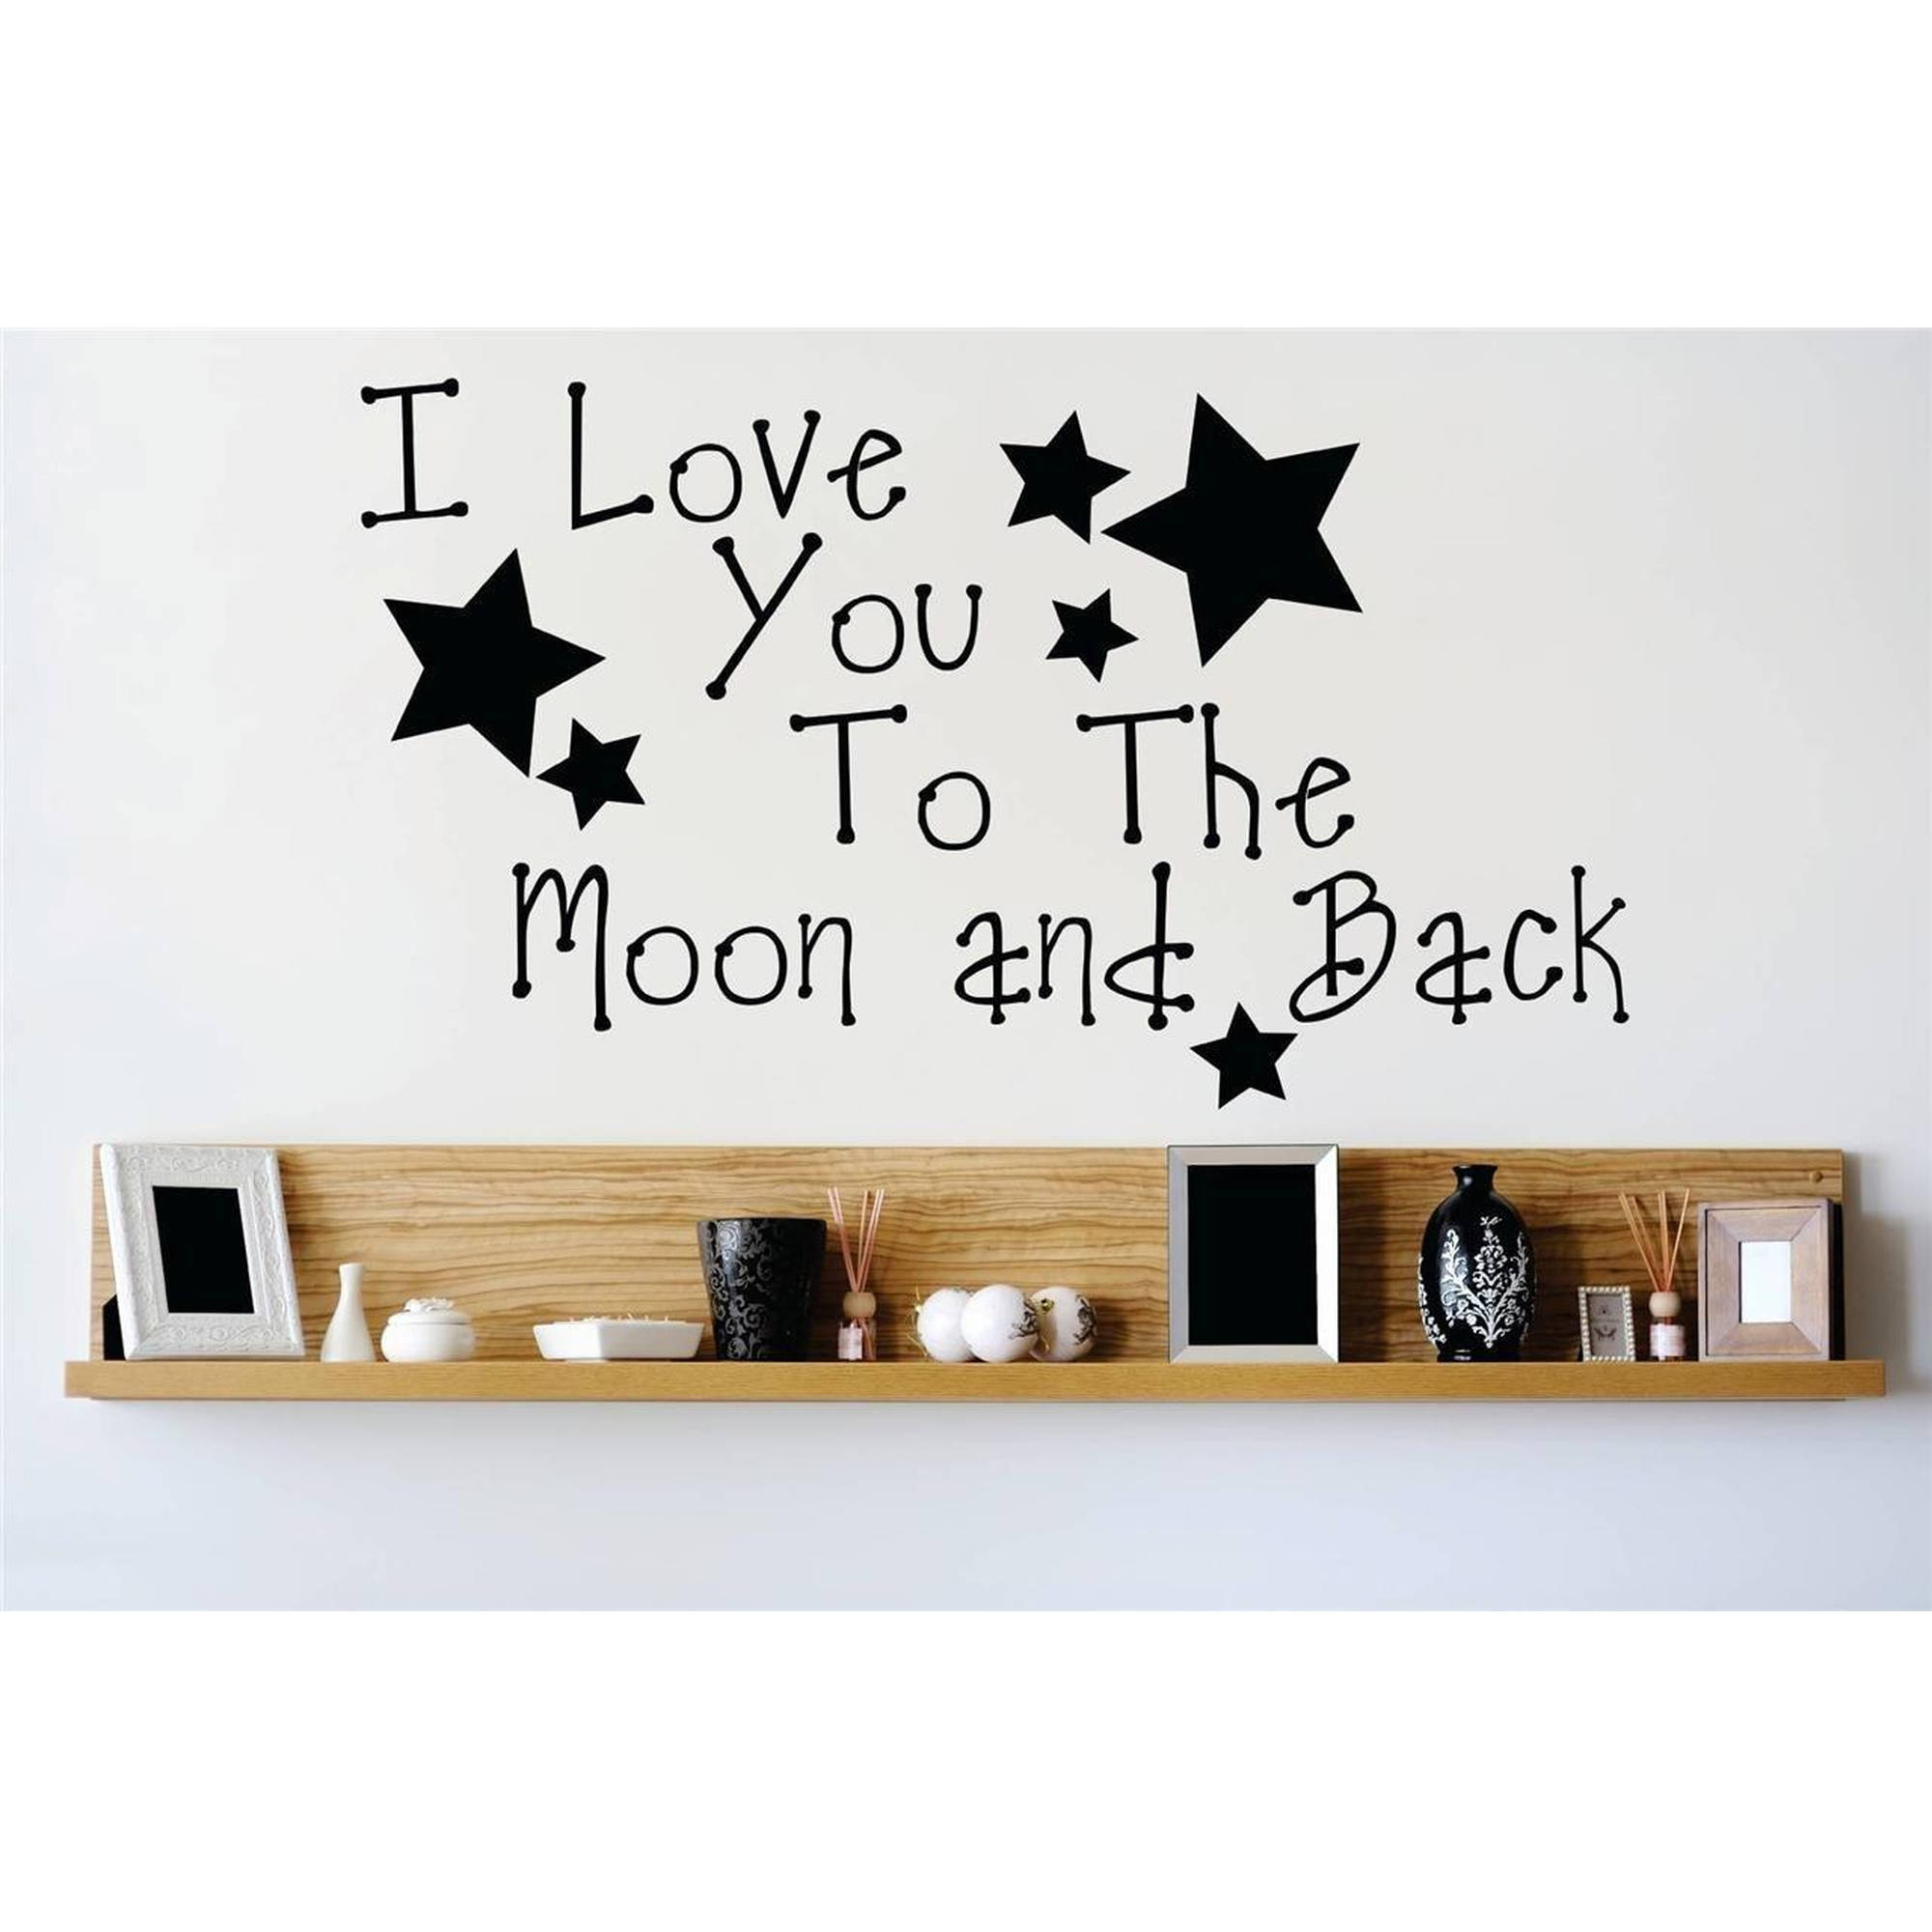 "I Love You To The Moon And Back Bedroom Vinyl Wall Decal, 15"" x 20"", Black"